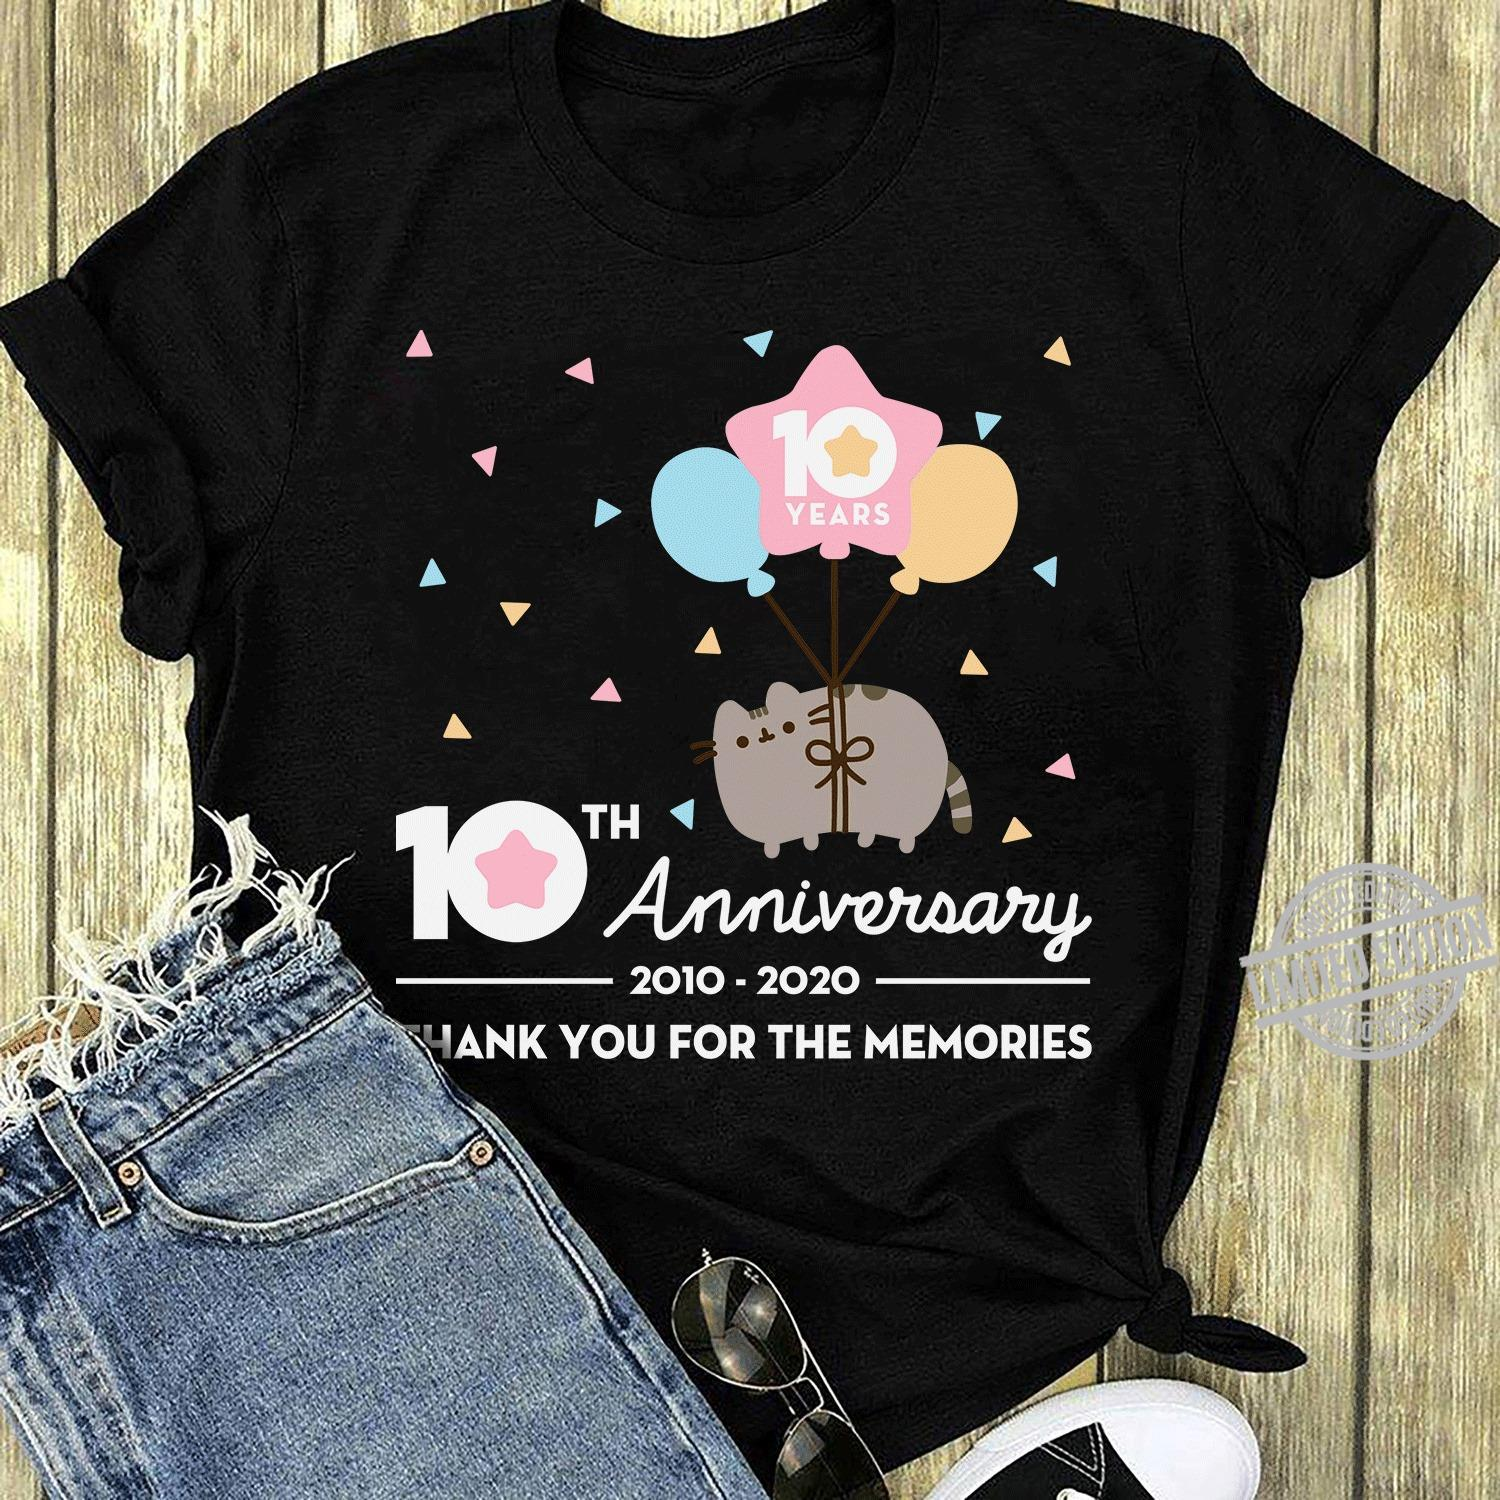 10th Anniversary 2010-2020 Thank You For The Memories Shirt